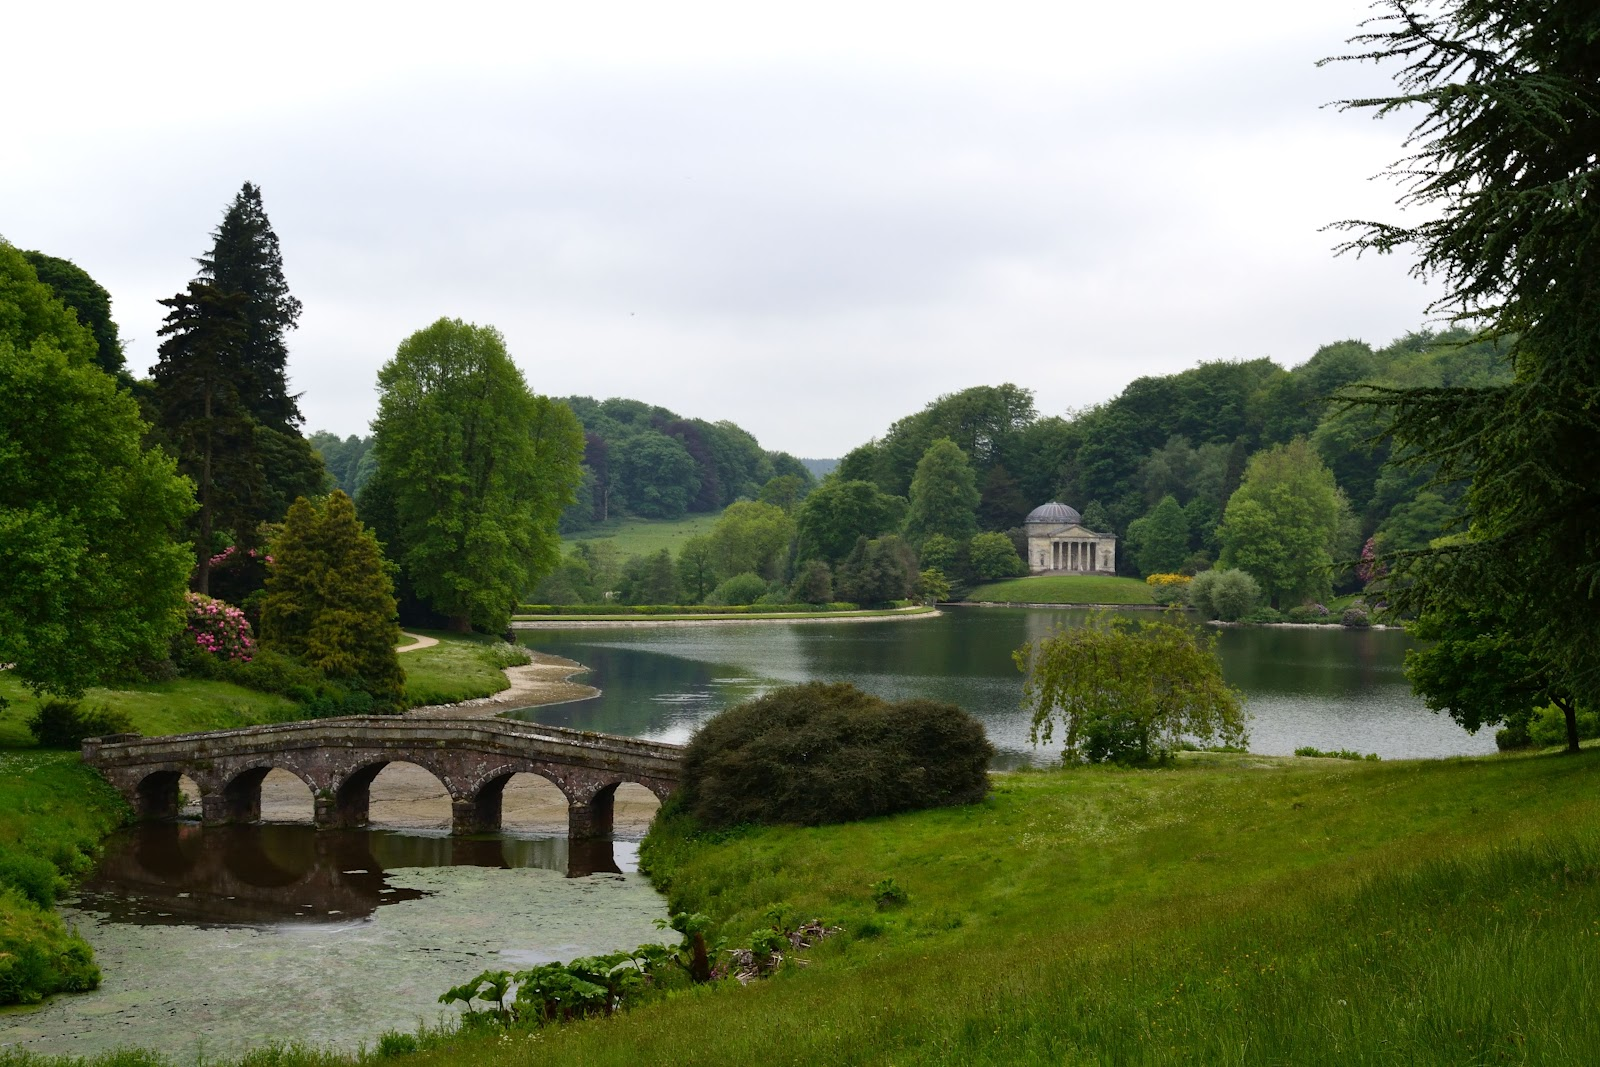 A Bracelet Of Days In The Gardens At Stourhead House